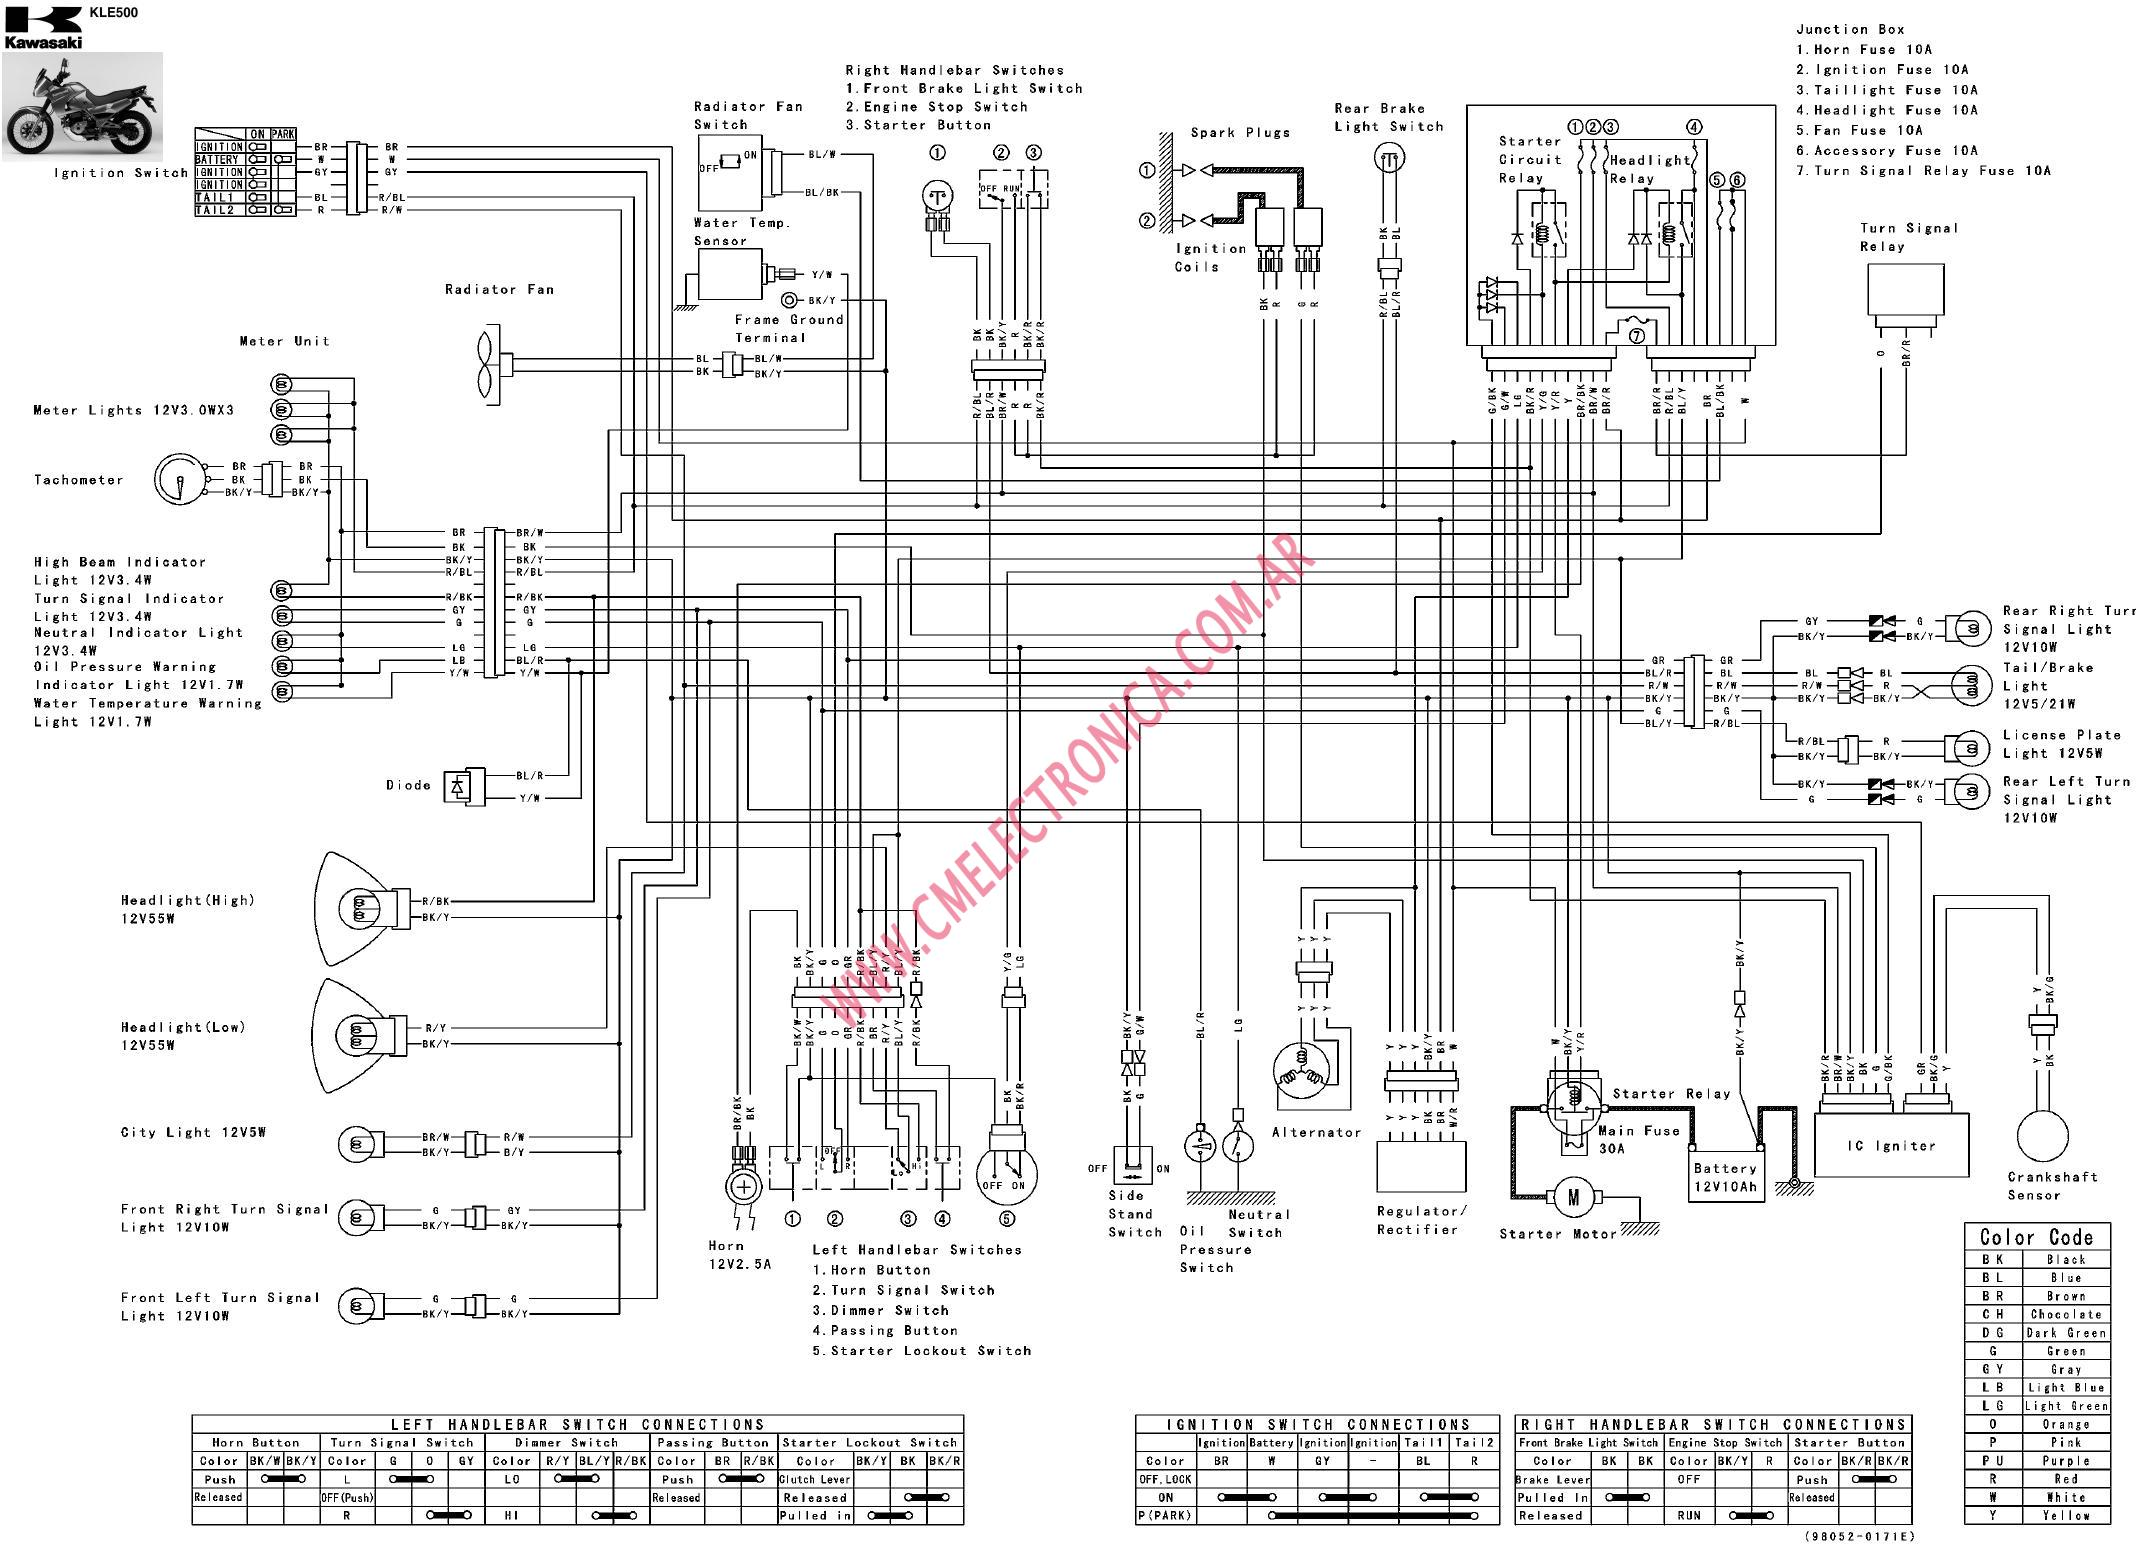 Kawasaki Ninja Ex500 Wiring Diagramon Kawasaki Ninja 250 Ignition Wiring Diagram